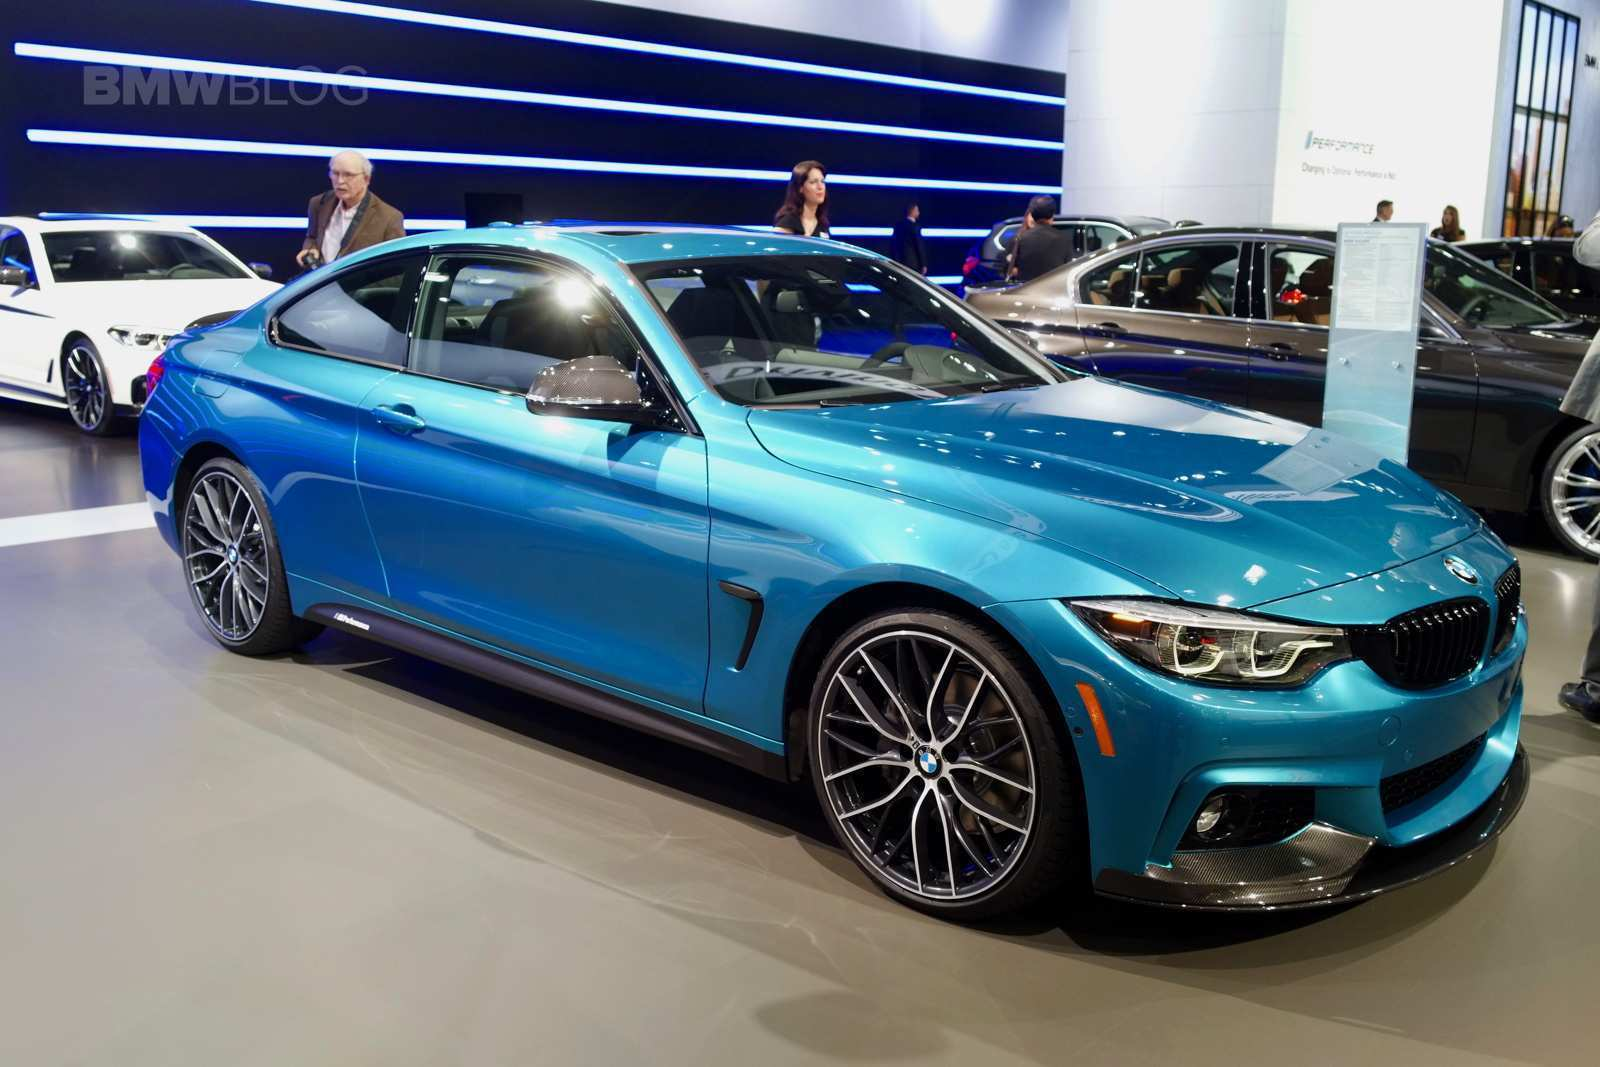 29 All New 2019 Bmw 428I Interior for 2019 Bmw 428I